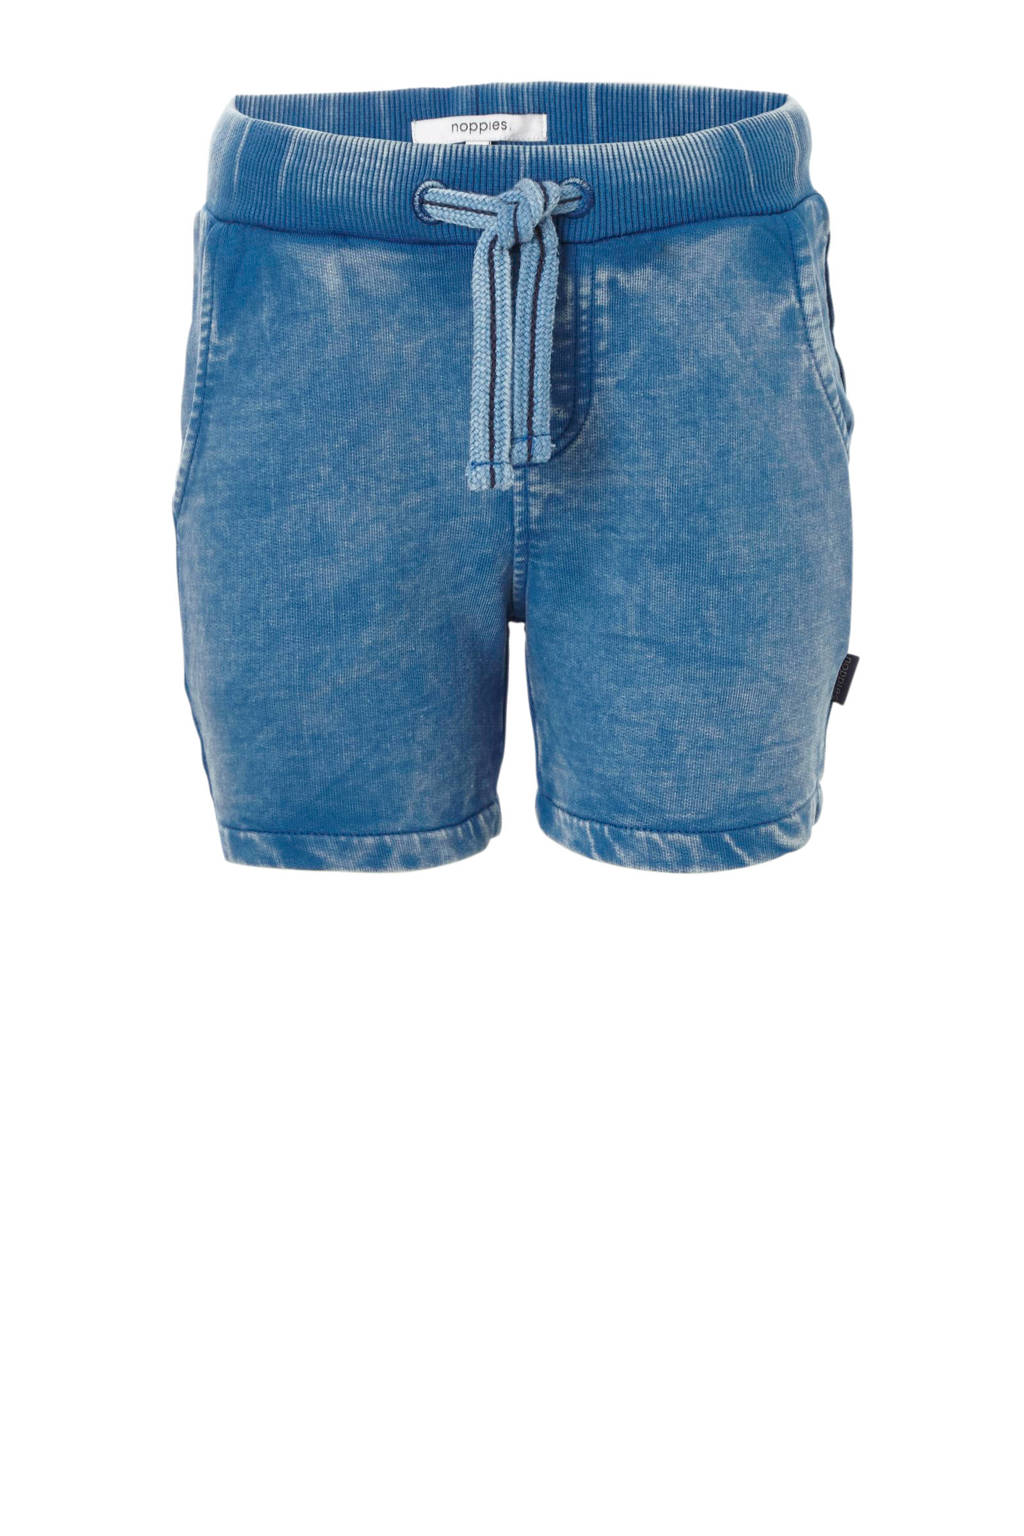 Noppies sweatshort Robstown denim blue, Denim blue